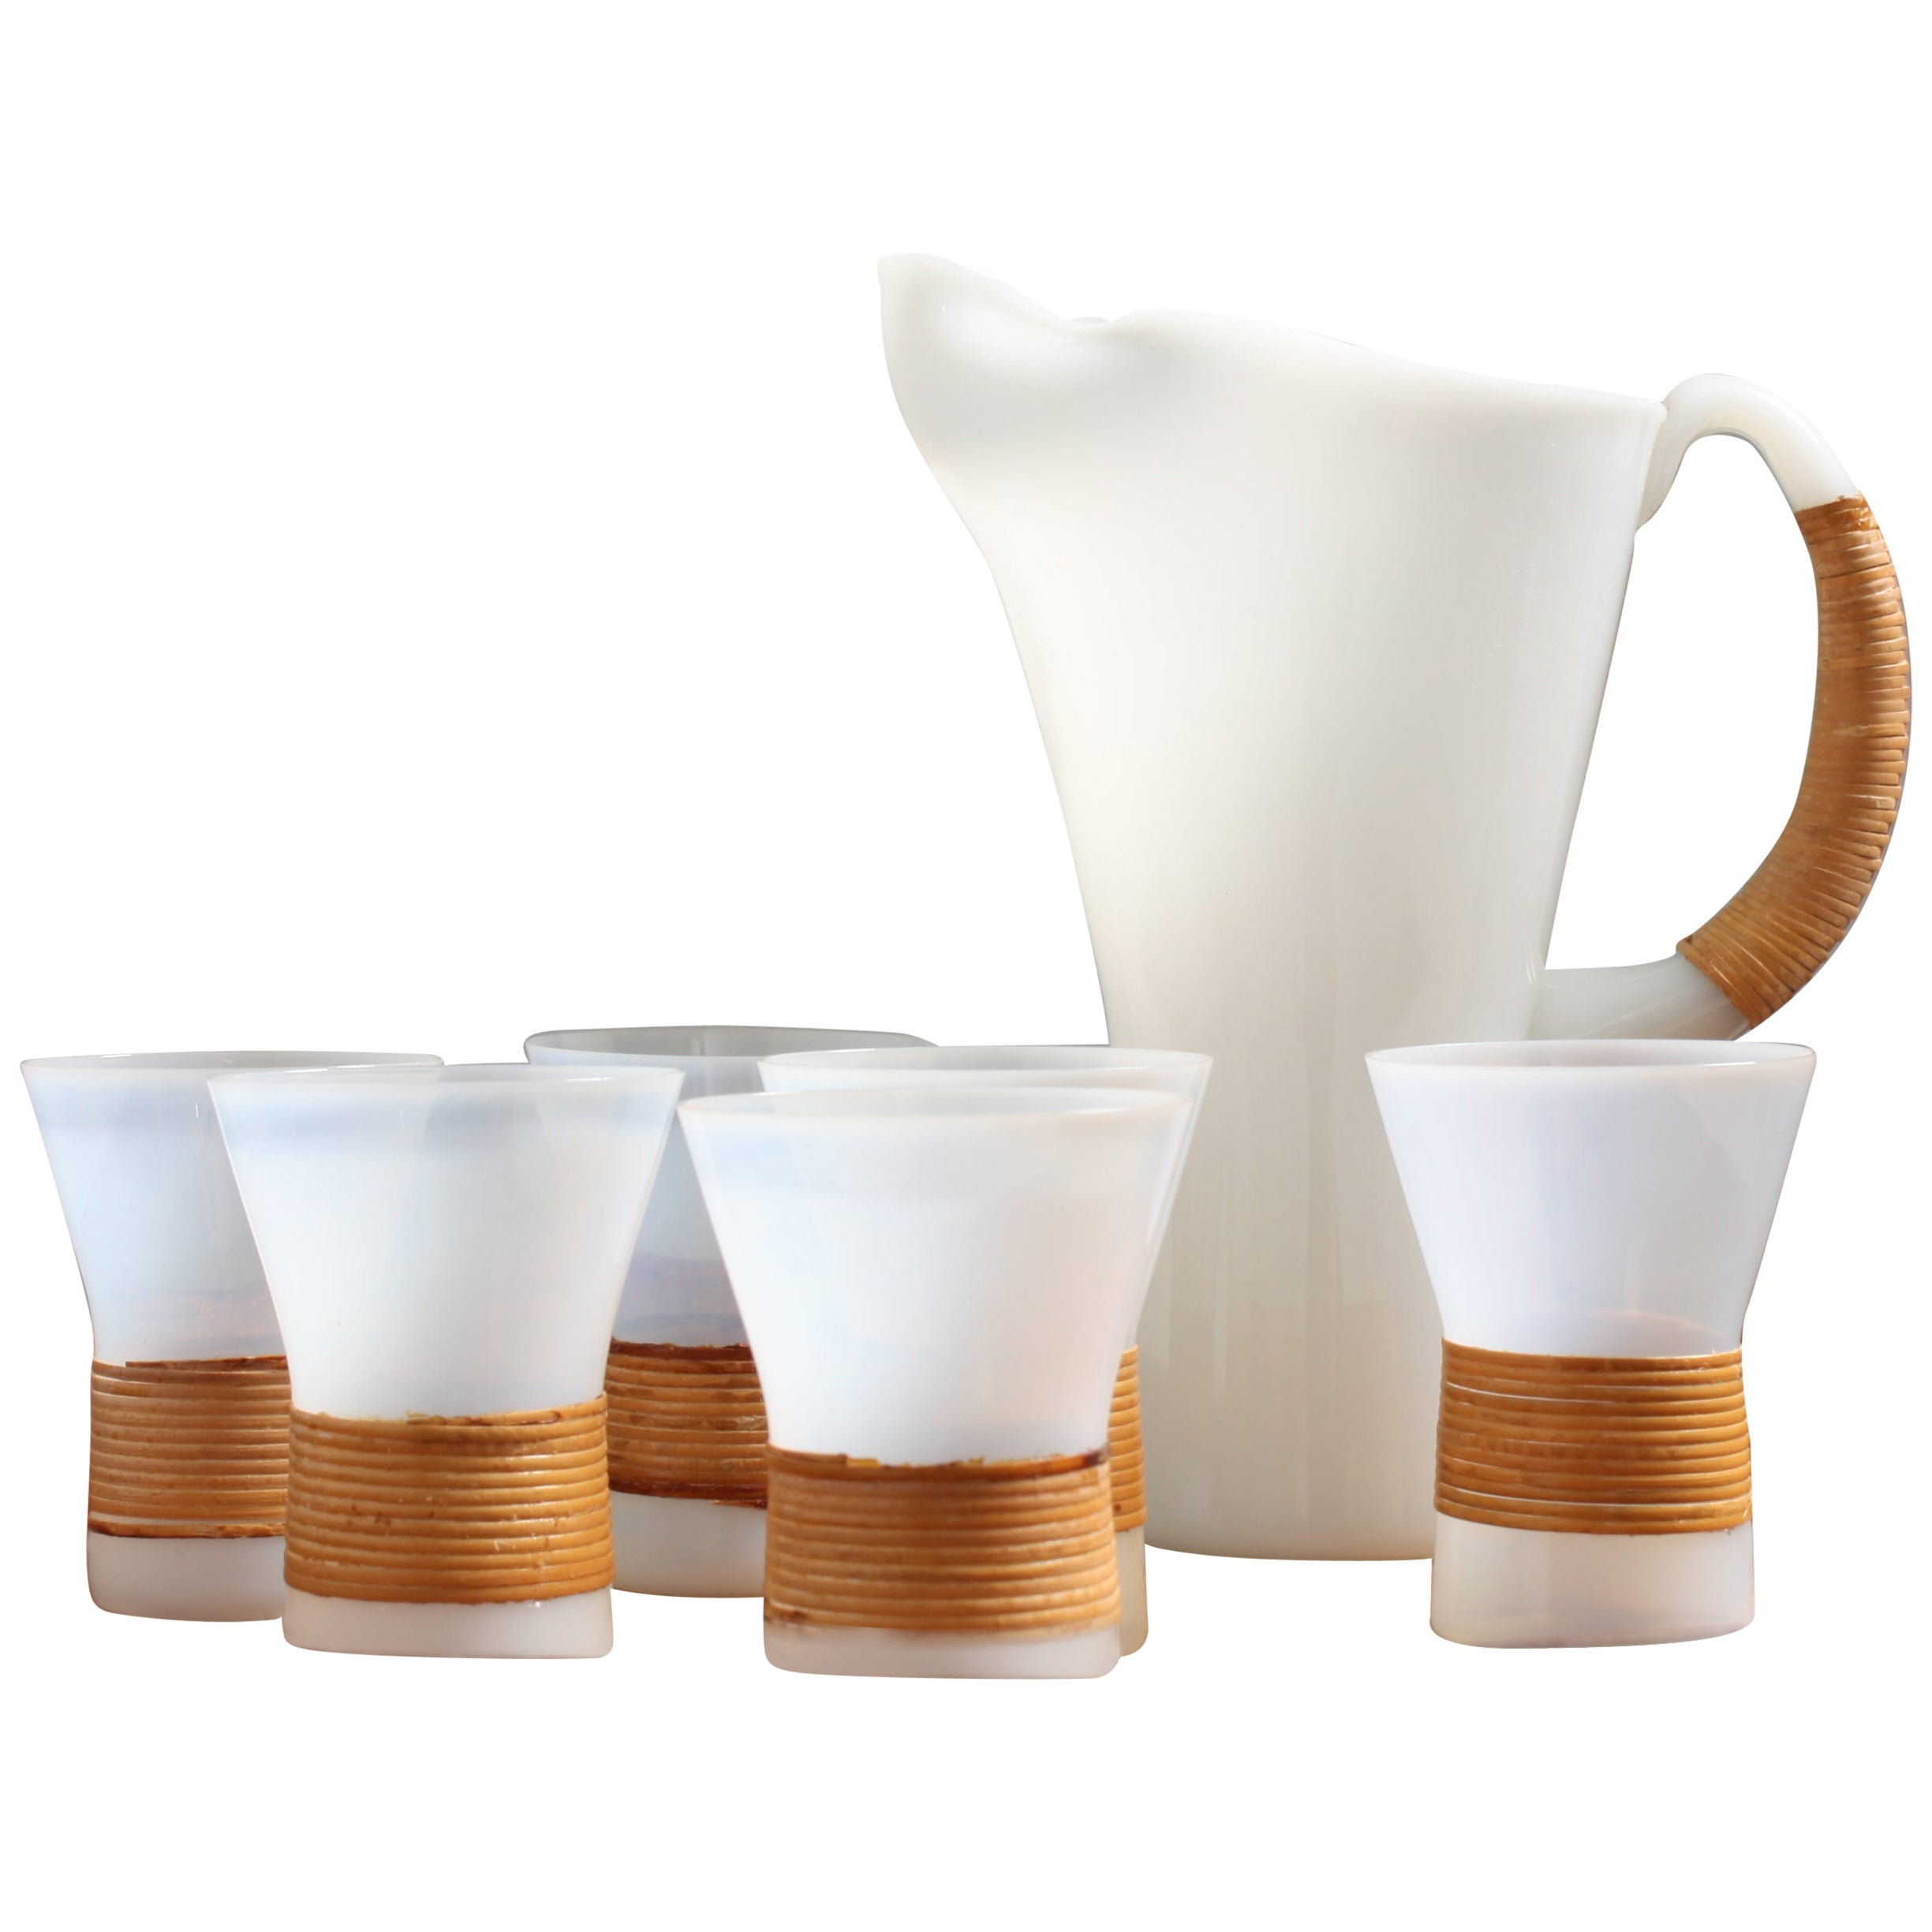 Midcentury Drink Pitcher and Six Glass by Jacob E. Bang, Danish Modern, 1950s